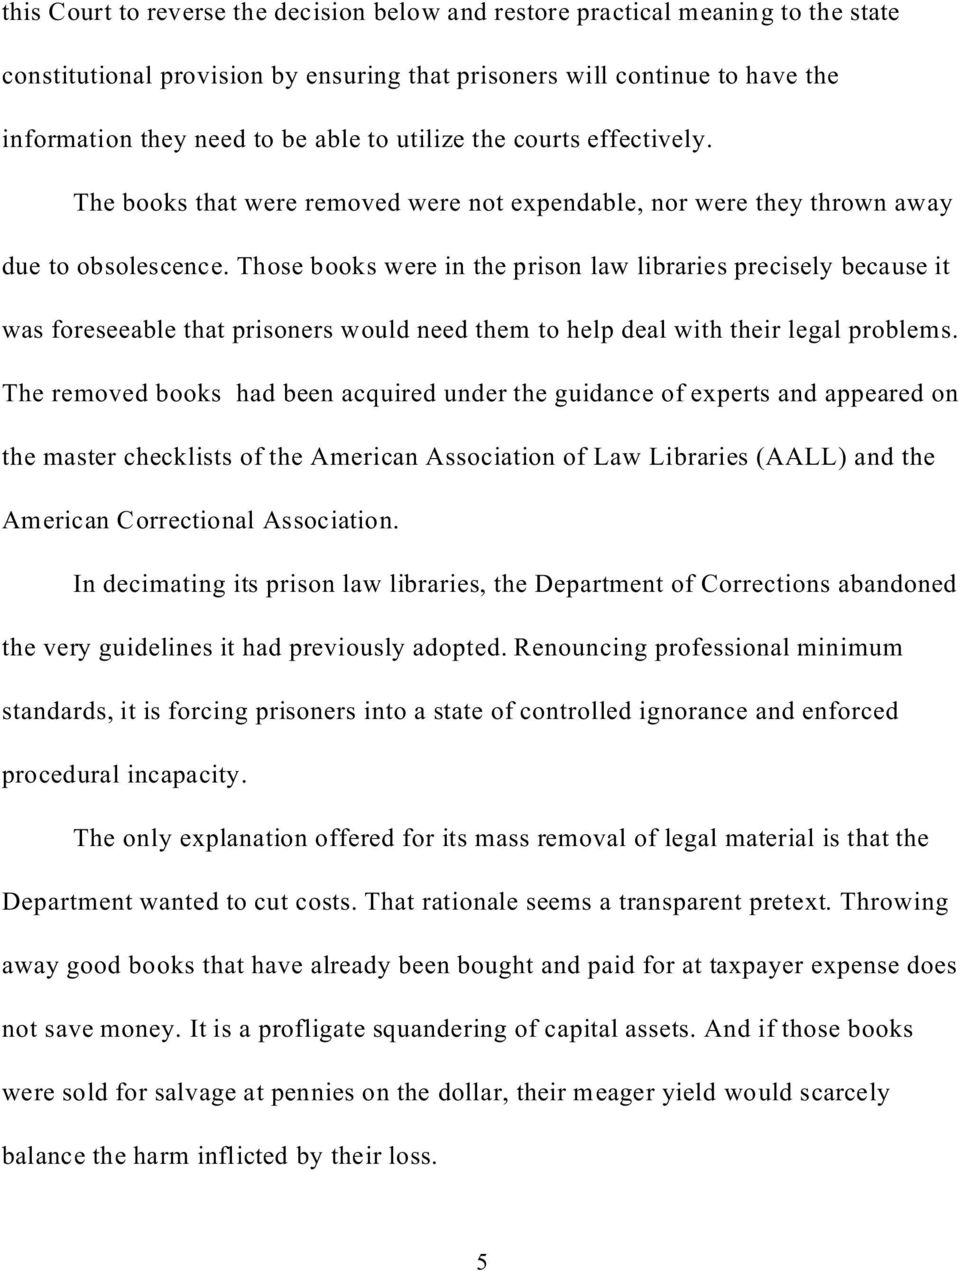 Those books were in the prison law libraries precisely because it was foreseeable that prisoners would need them to help deal with their legal problems.